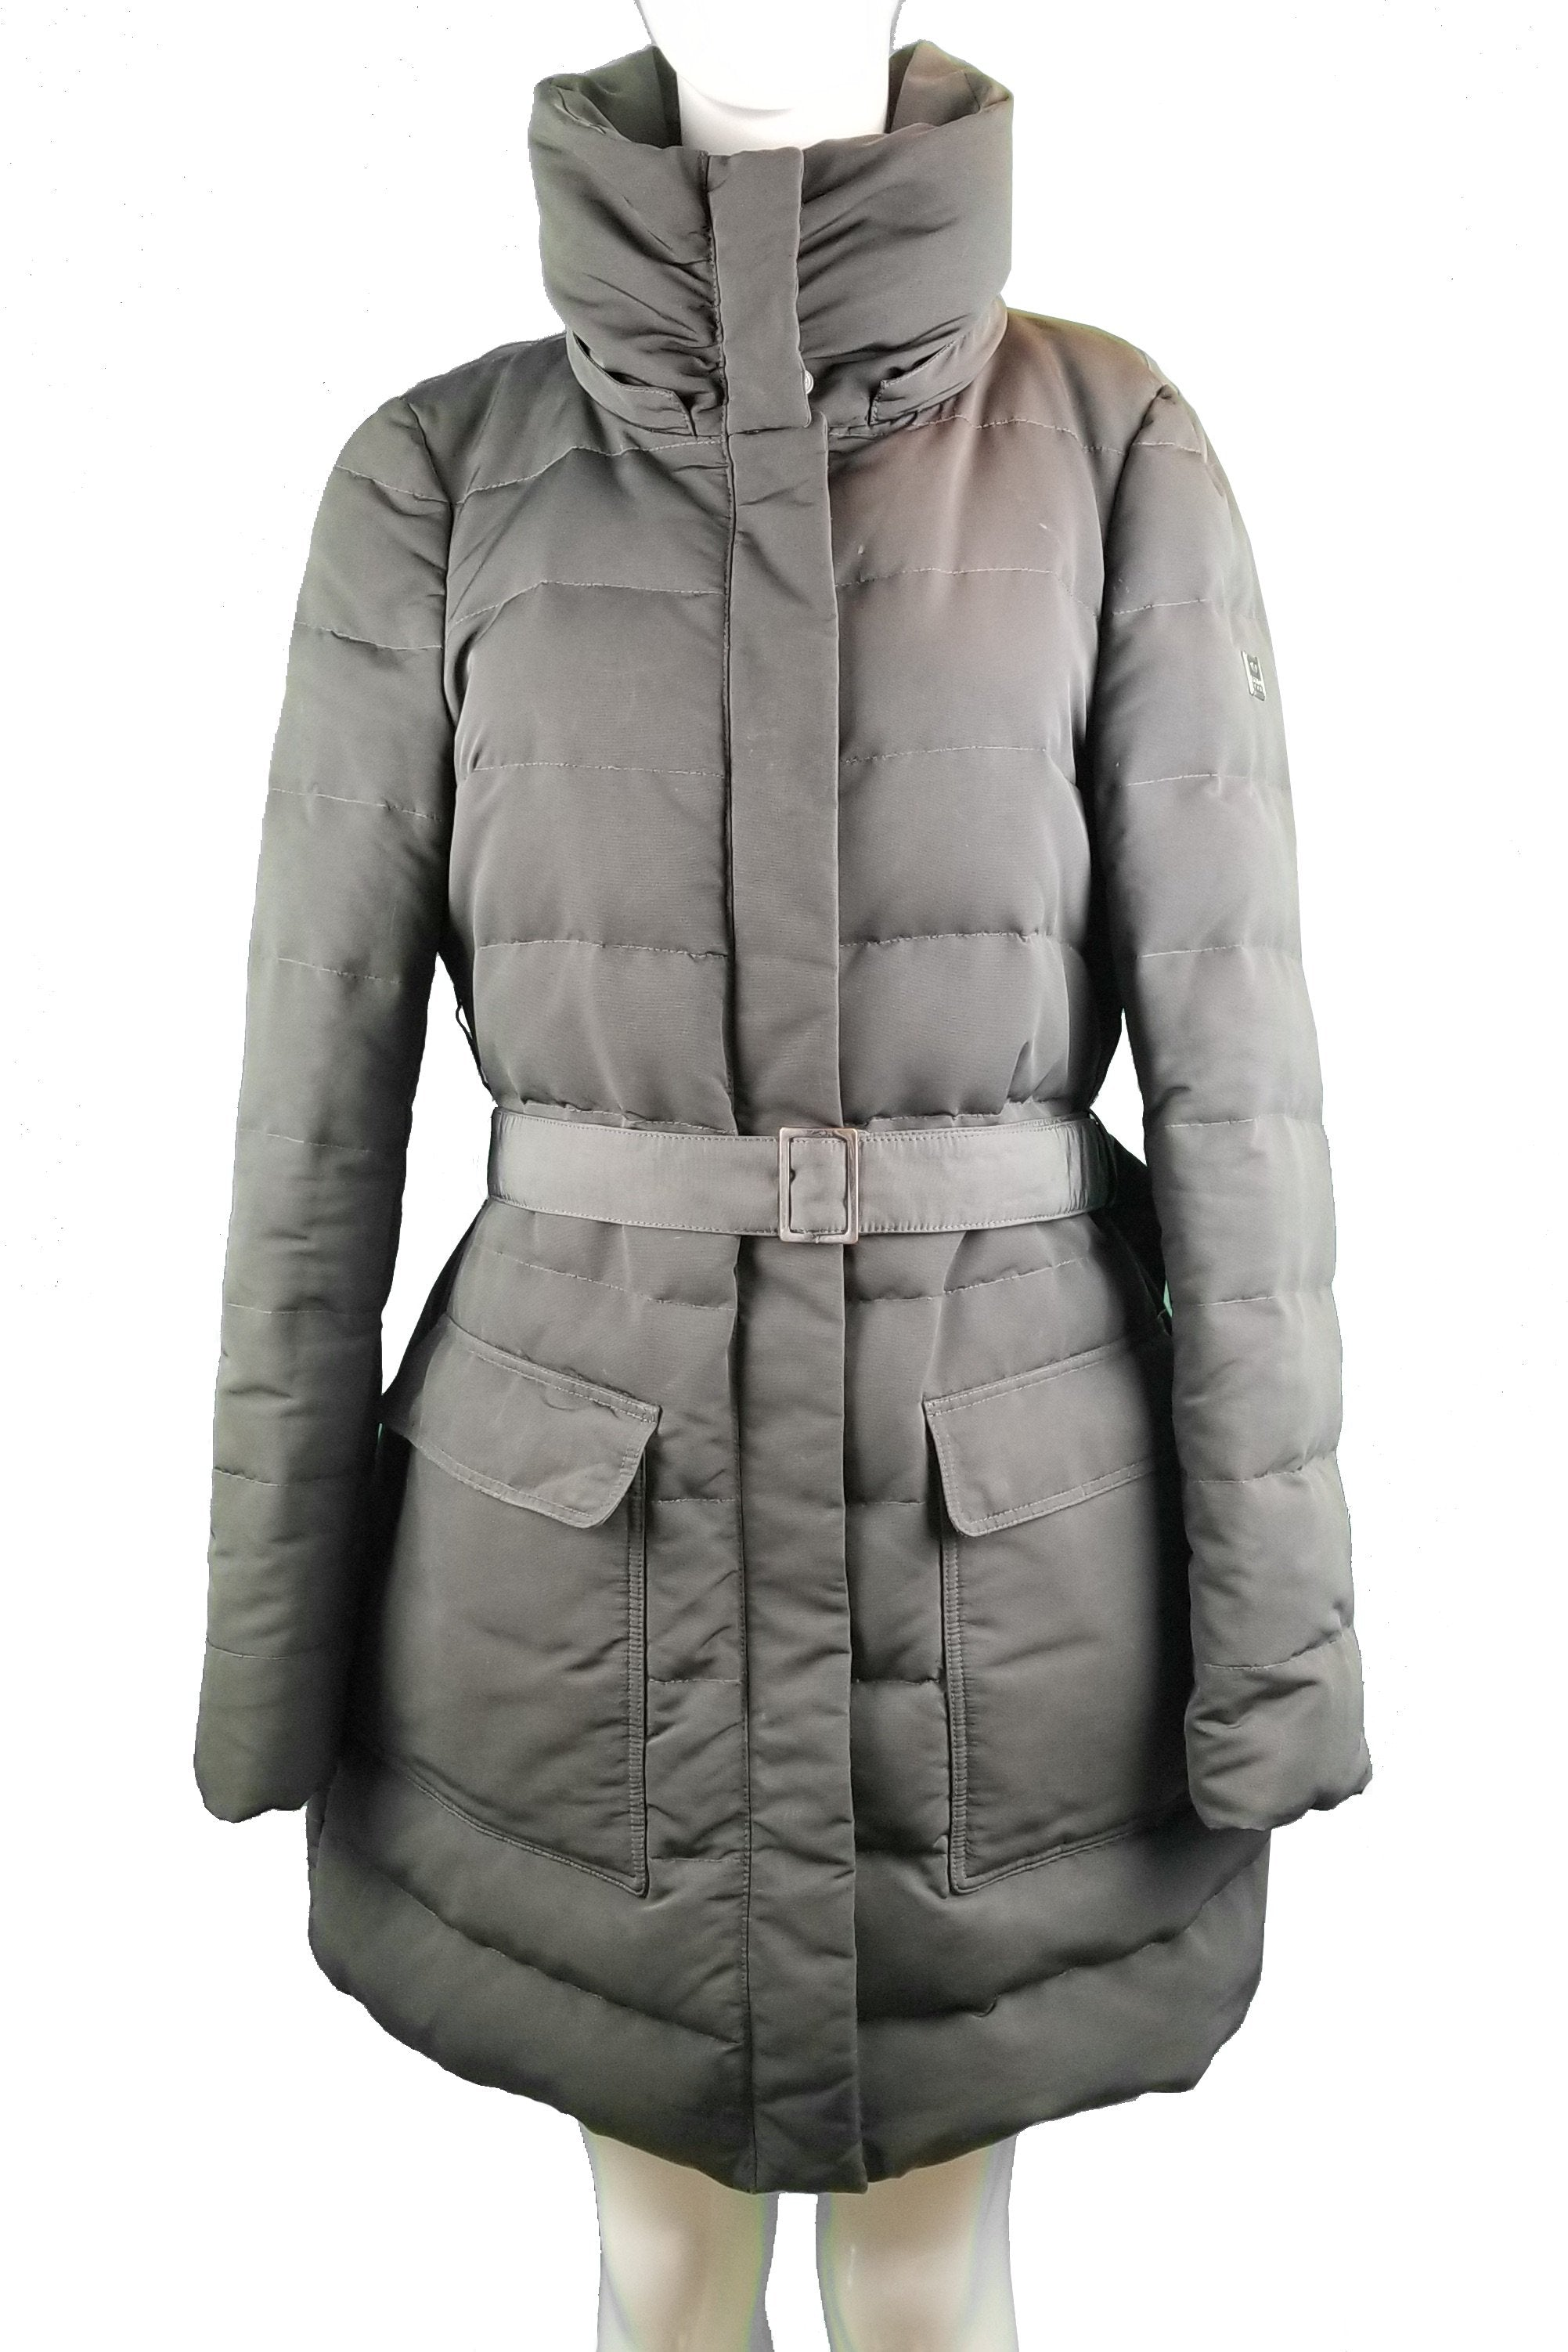 Escada Sport Down Jacket, Dressing warm doesn't have to be dull! This  winter jacket will keep you away from the cold and make you feel so stylish., Grey, Lining 100% Polyester; filling 70% Goose Down, 30% goose Quill, women's Jackets & Coats, women's Grey Jackets & Coats, Escada Sport women's Jackets & Coats, women's down jacket, women's warm winter jacket, down jacket, long winter down overcoat